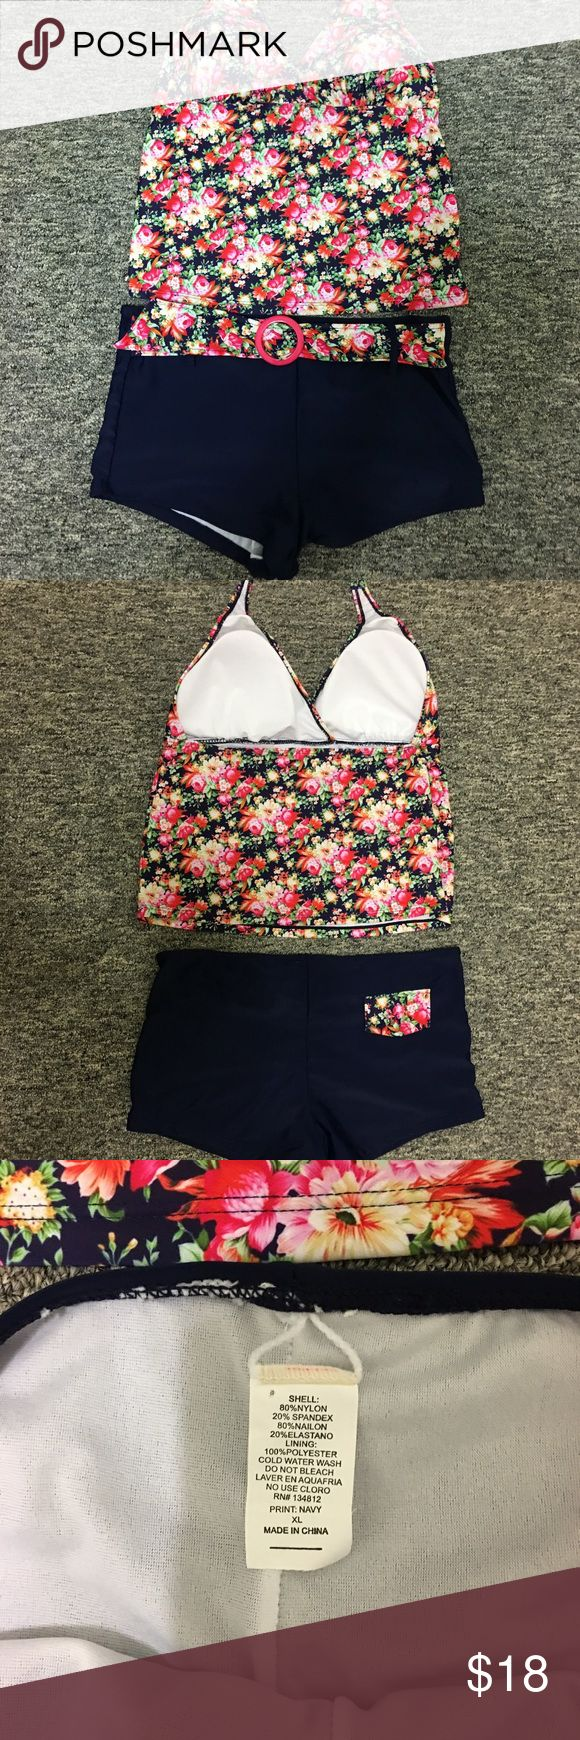 Tankini Pink/White/Red Floral & Navy XL NWOT Cute Halter Style Tie Top, Tankini with Pink/White/Red/Green floral pattern & Navy boy short style bottoms with matching floral belt, bright pink plastic buckle.  Also, floral pocket detail on rear bottoms. White lining in both pieces.  Removable bra cup inserts.  Purchased in Las Vegas.  NWOT. Swim Bikinis